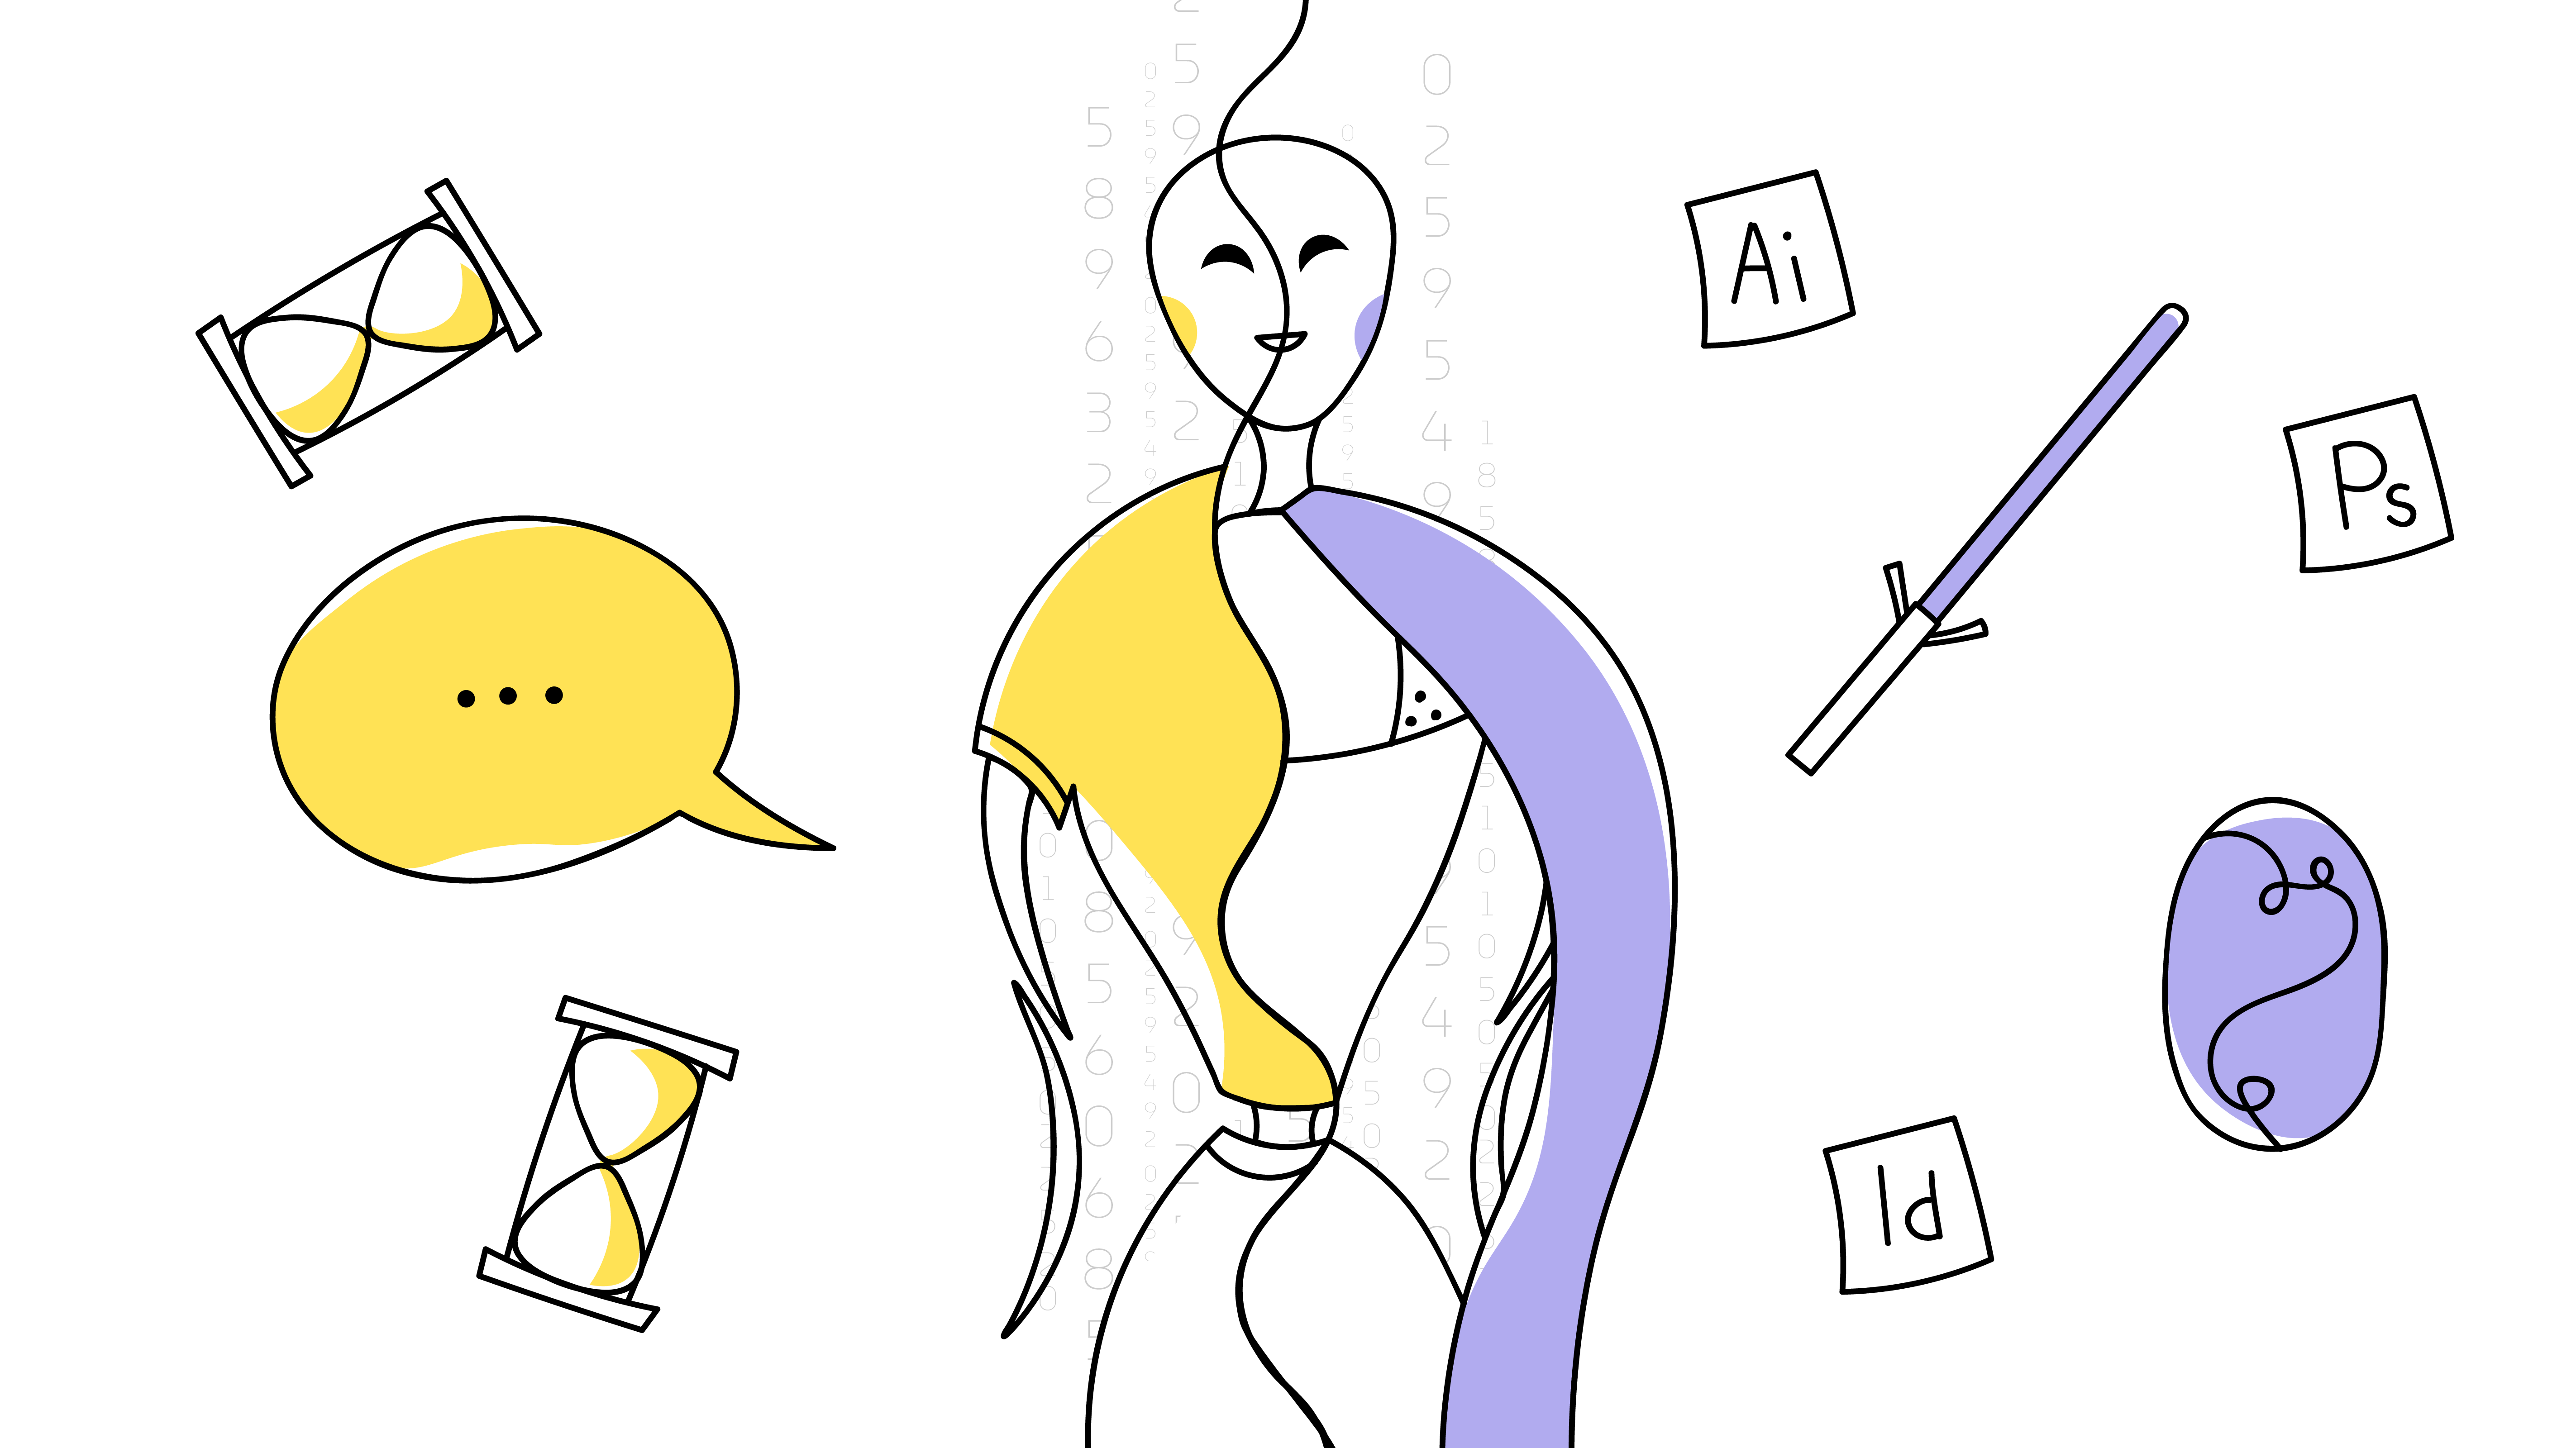 An outline illustration with the AI robot divided in half. One side is yellow and it has in casual clothes (represents soft skills). Another is purple and it has a robe (represents hard skills).